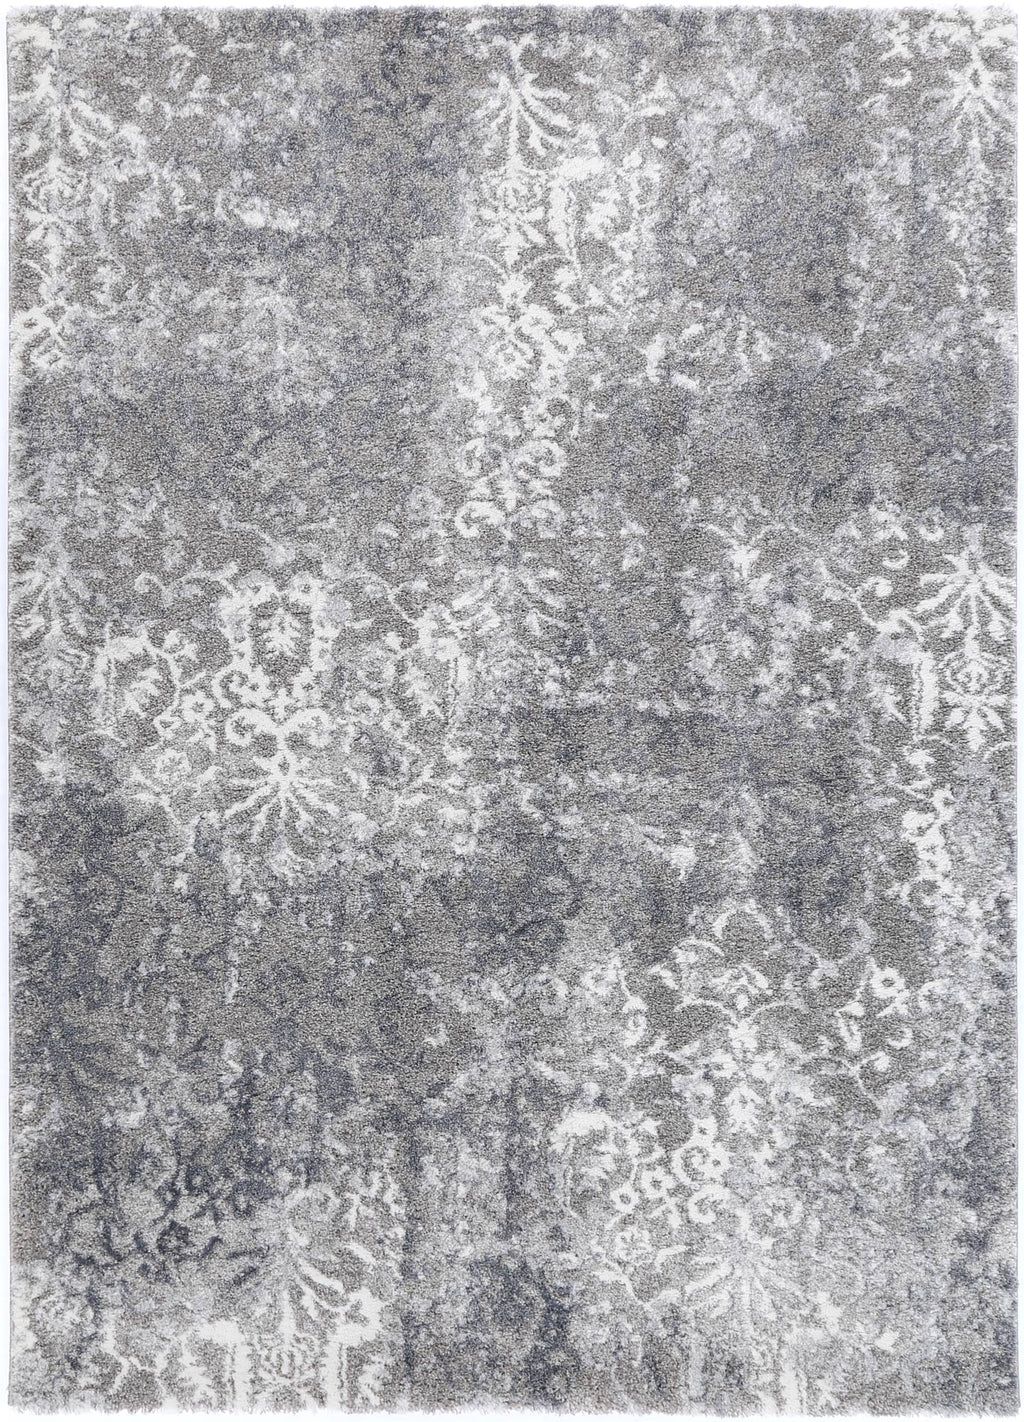 Yuzil Transitional Floral Rug